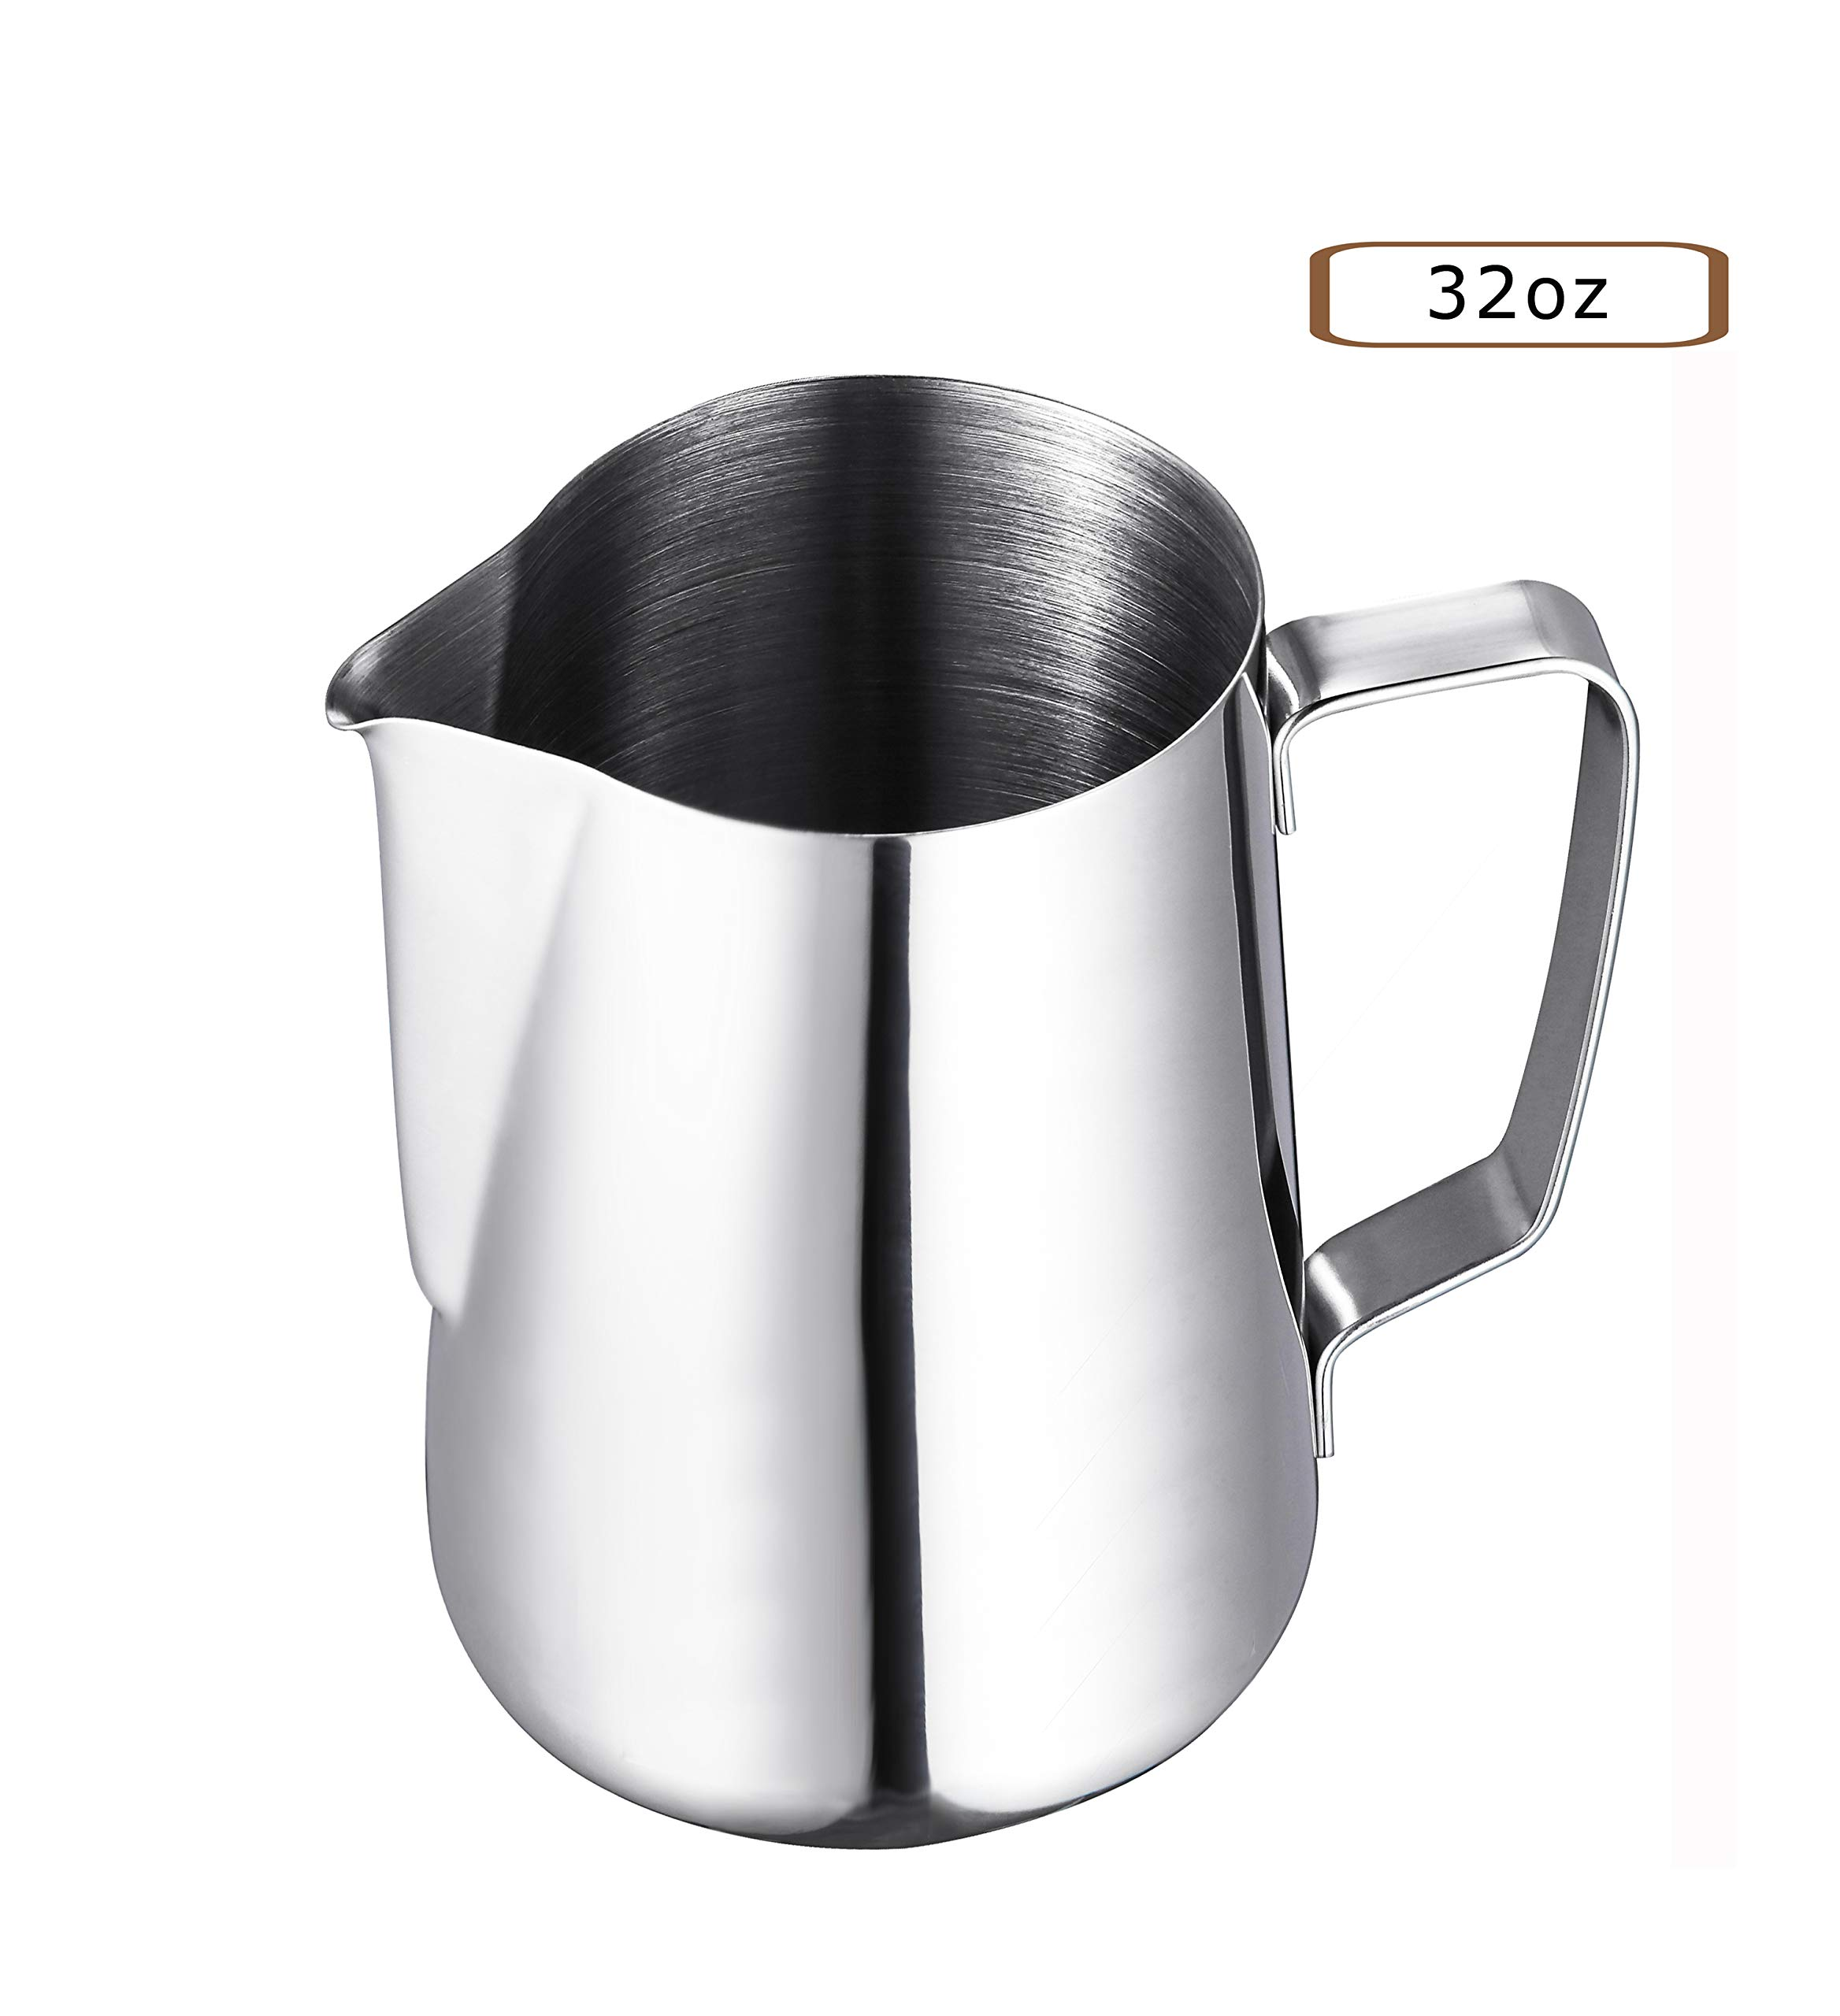 Coffee Tree Stainless Steel Milk Frother Pitcher for Espresso Coffee Machine, Cappuccino Latte Making (32oz) by Coffee Tree